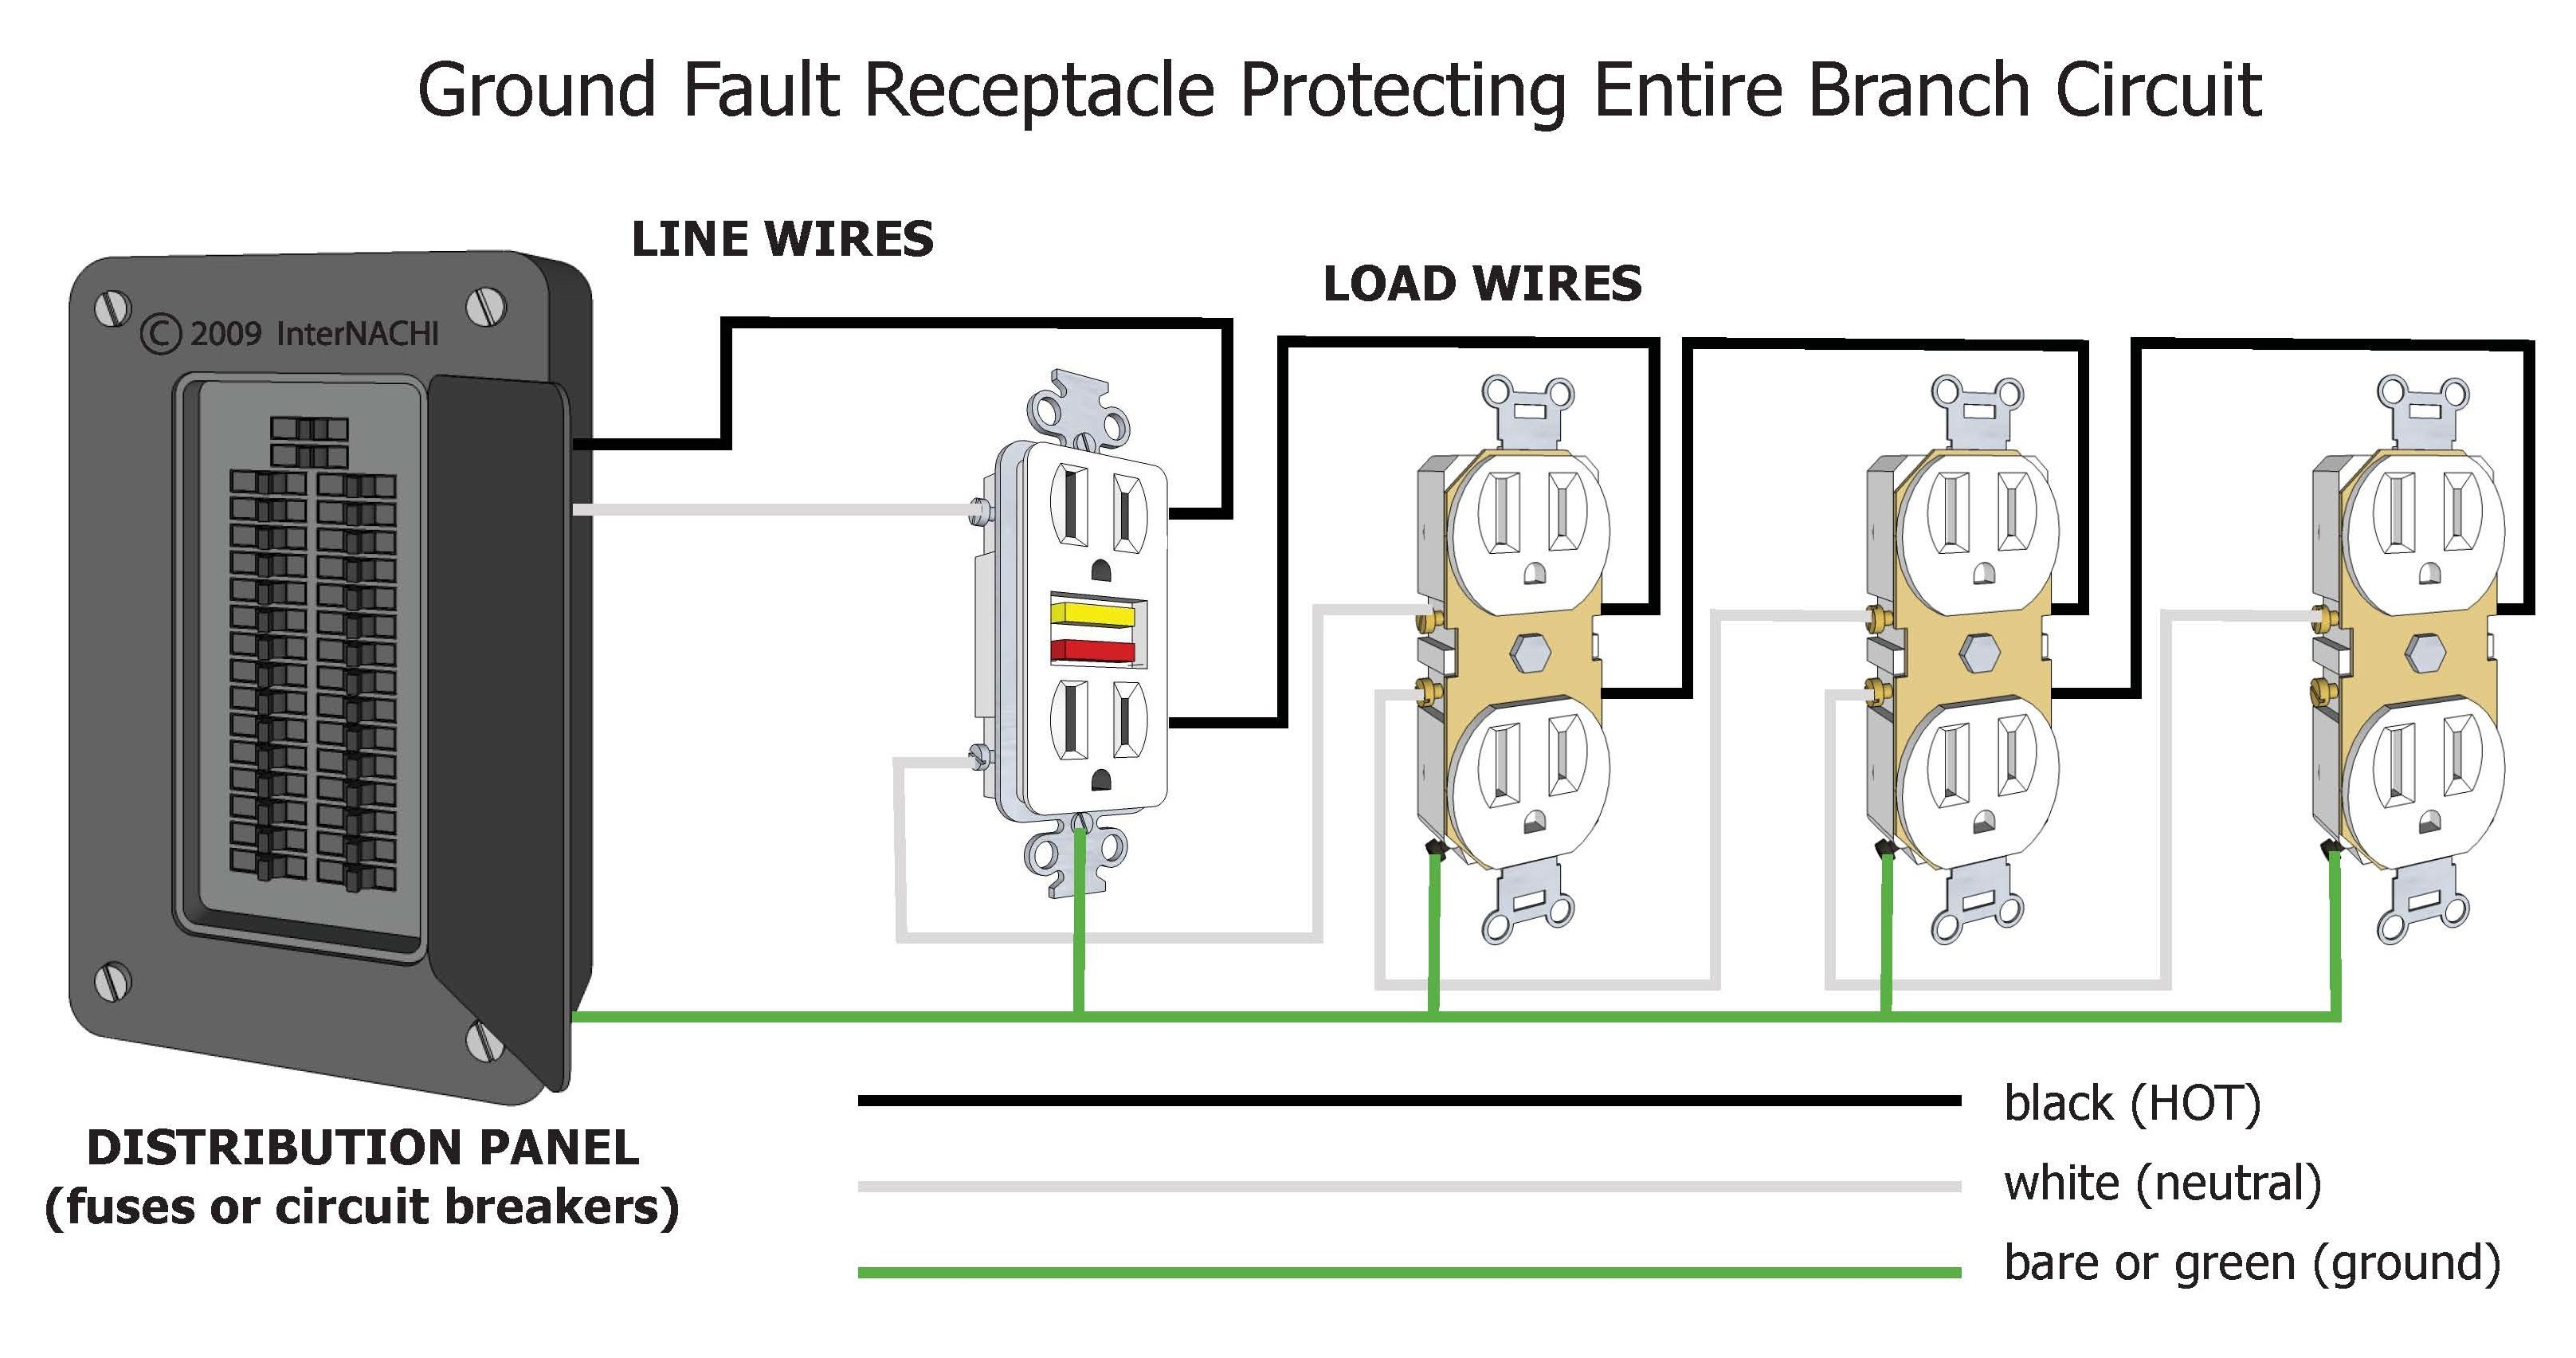 Gfci Circuit Breaker Wiring Diagram: Gfci Breaker Wiring Diagram - Facbooik.comDesign